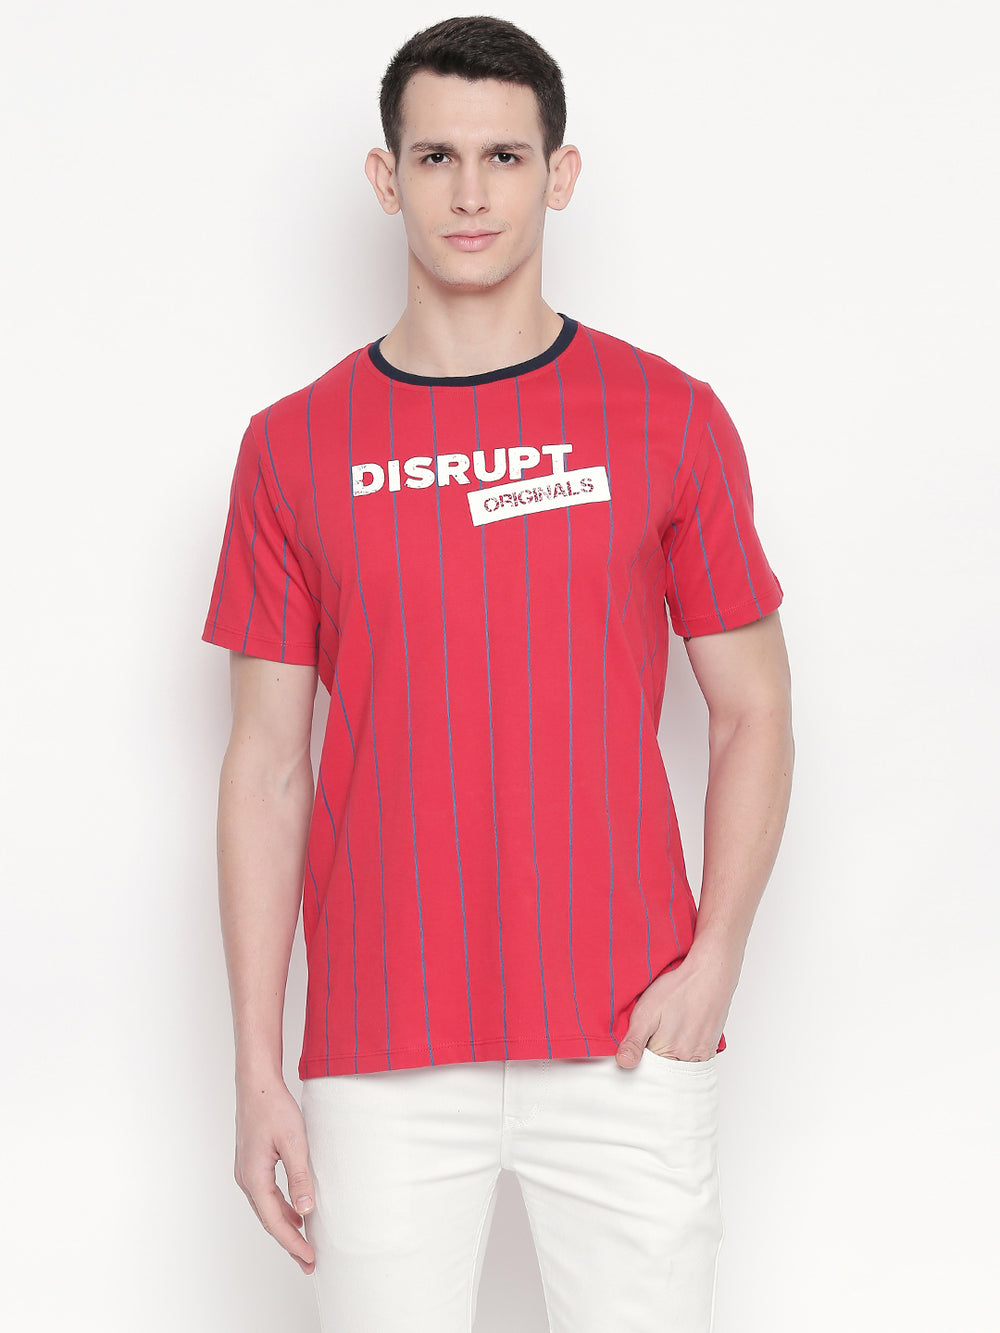 Blue Horizontal Striped Red Disrupt Graphic Print half sleeve T-shirt